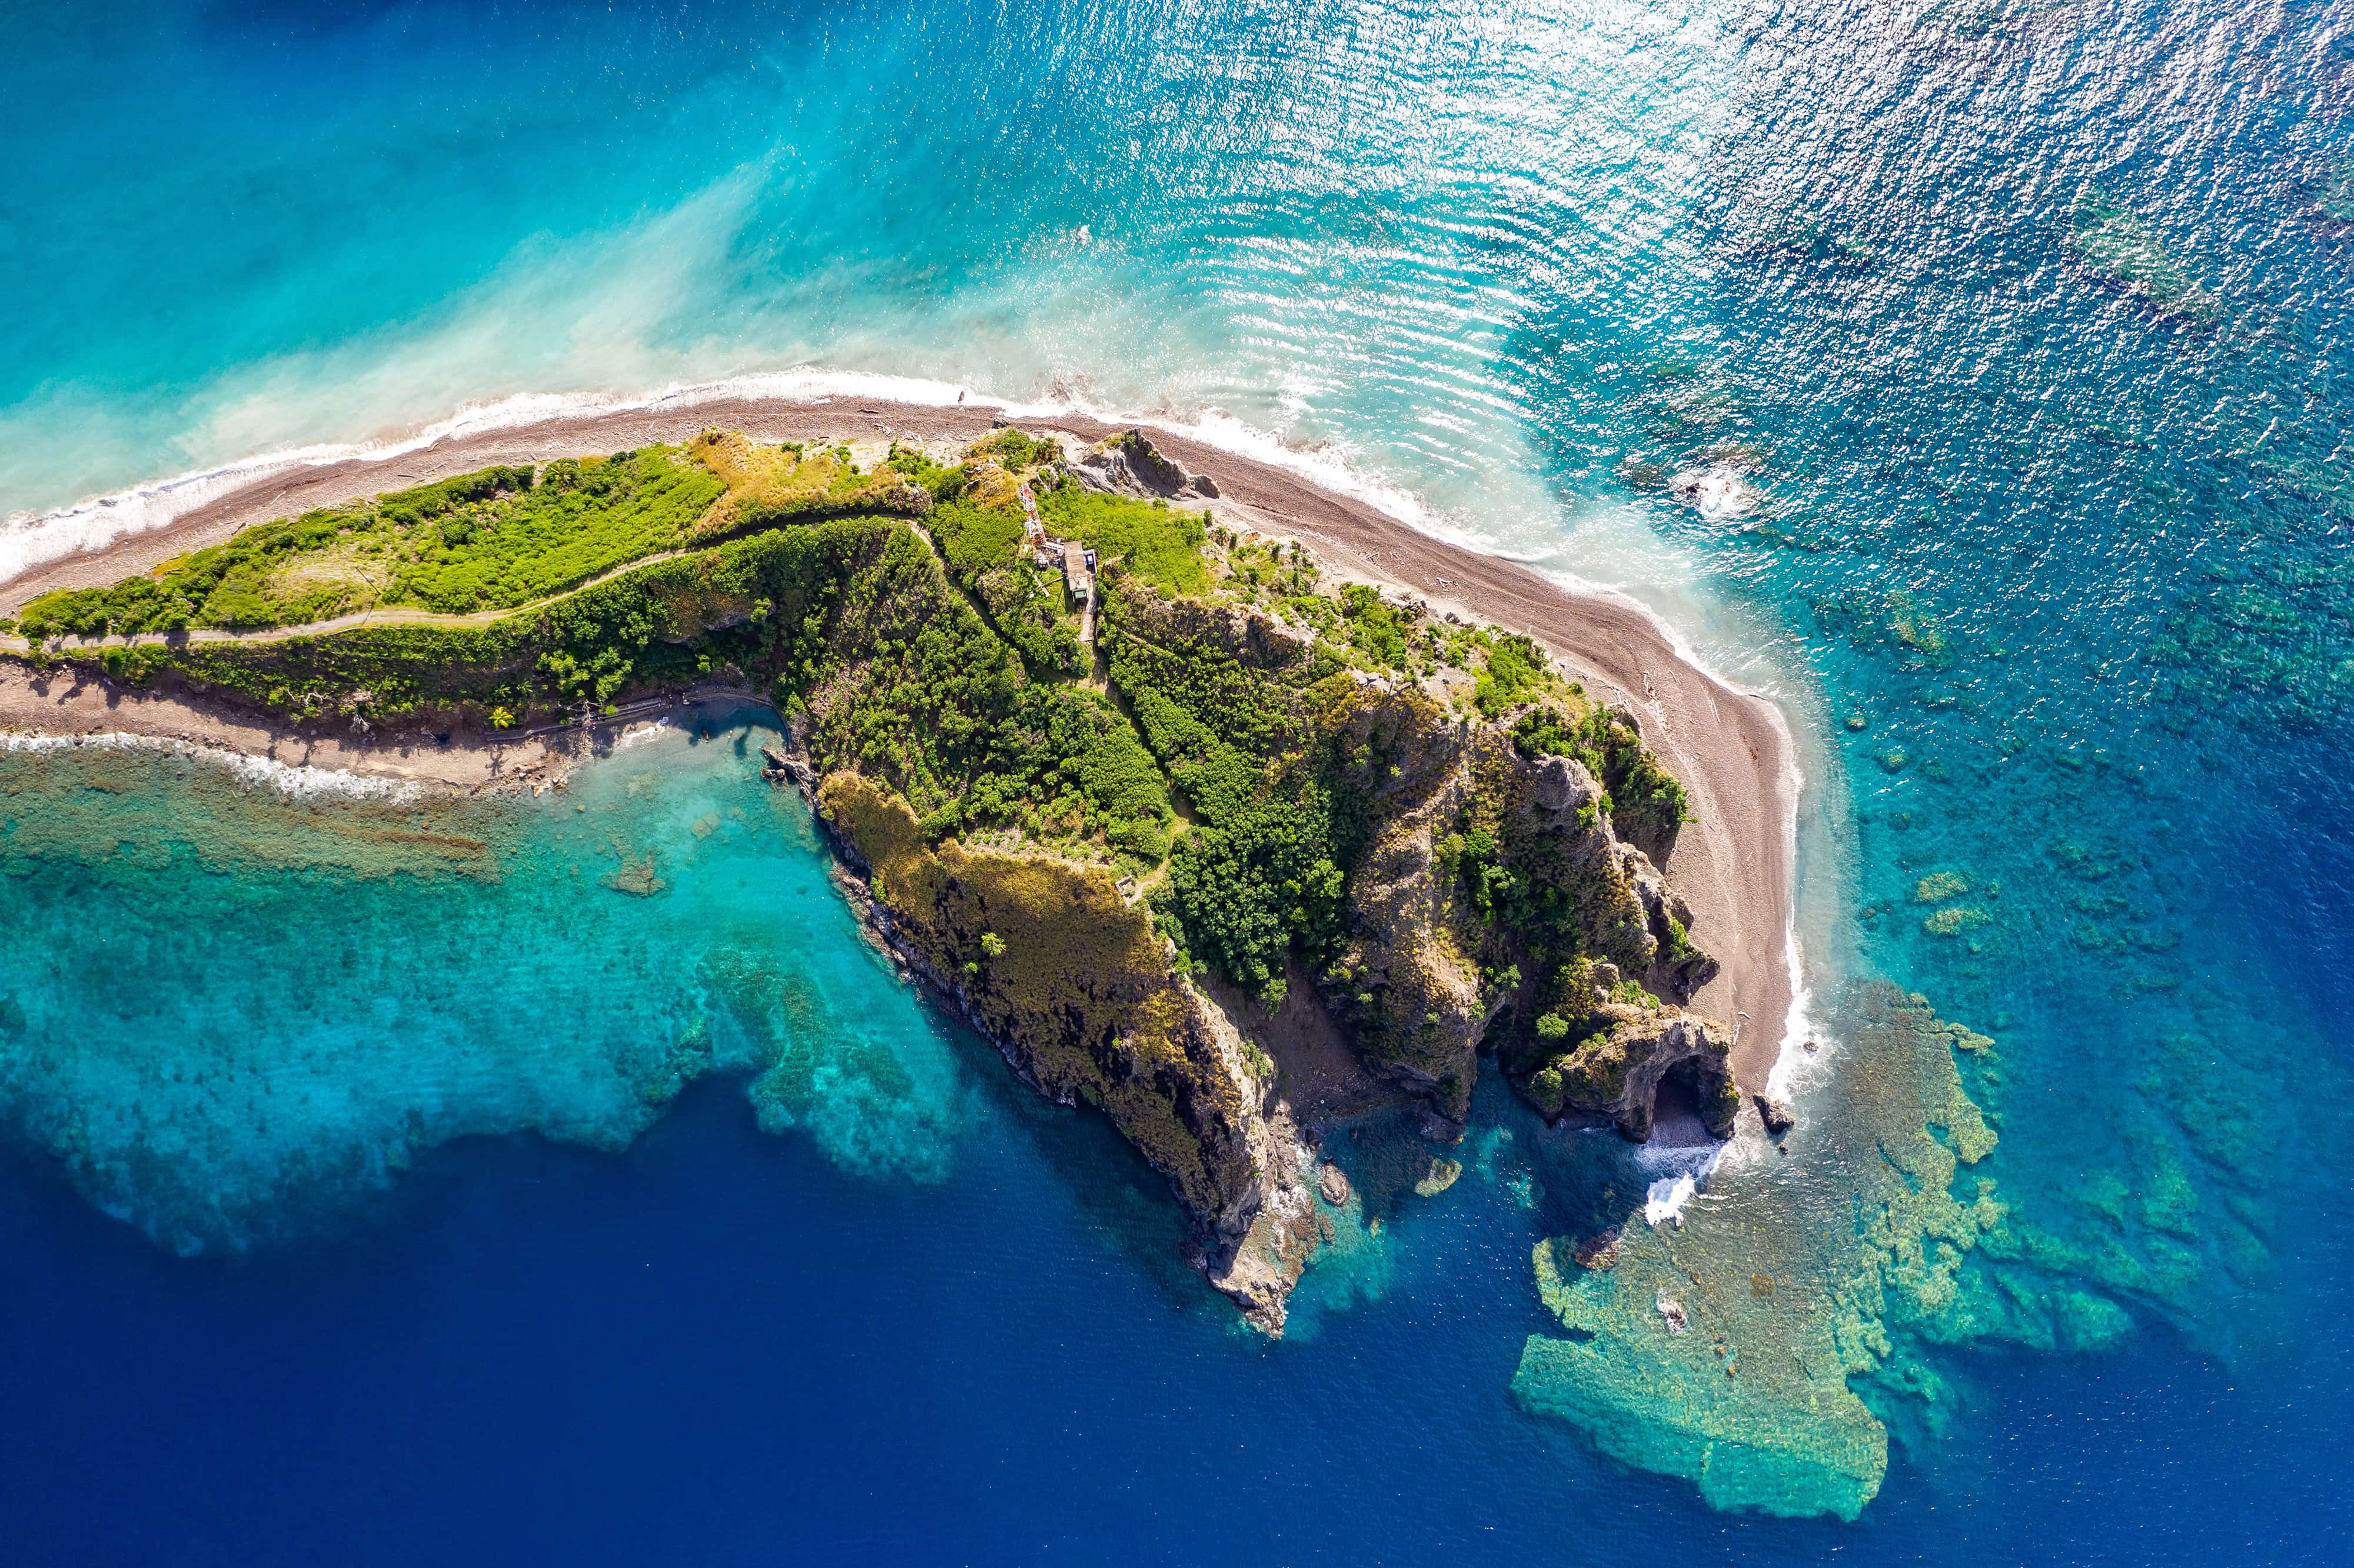 Scotts Head - Another One-of-a-Kind Feature of Dominica